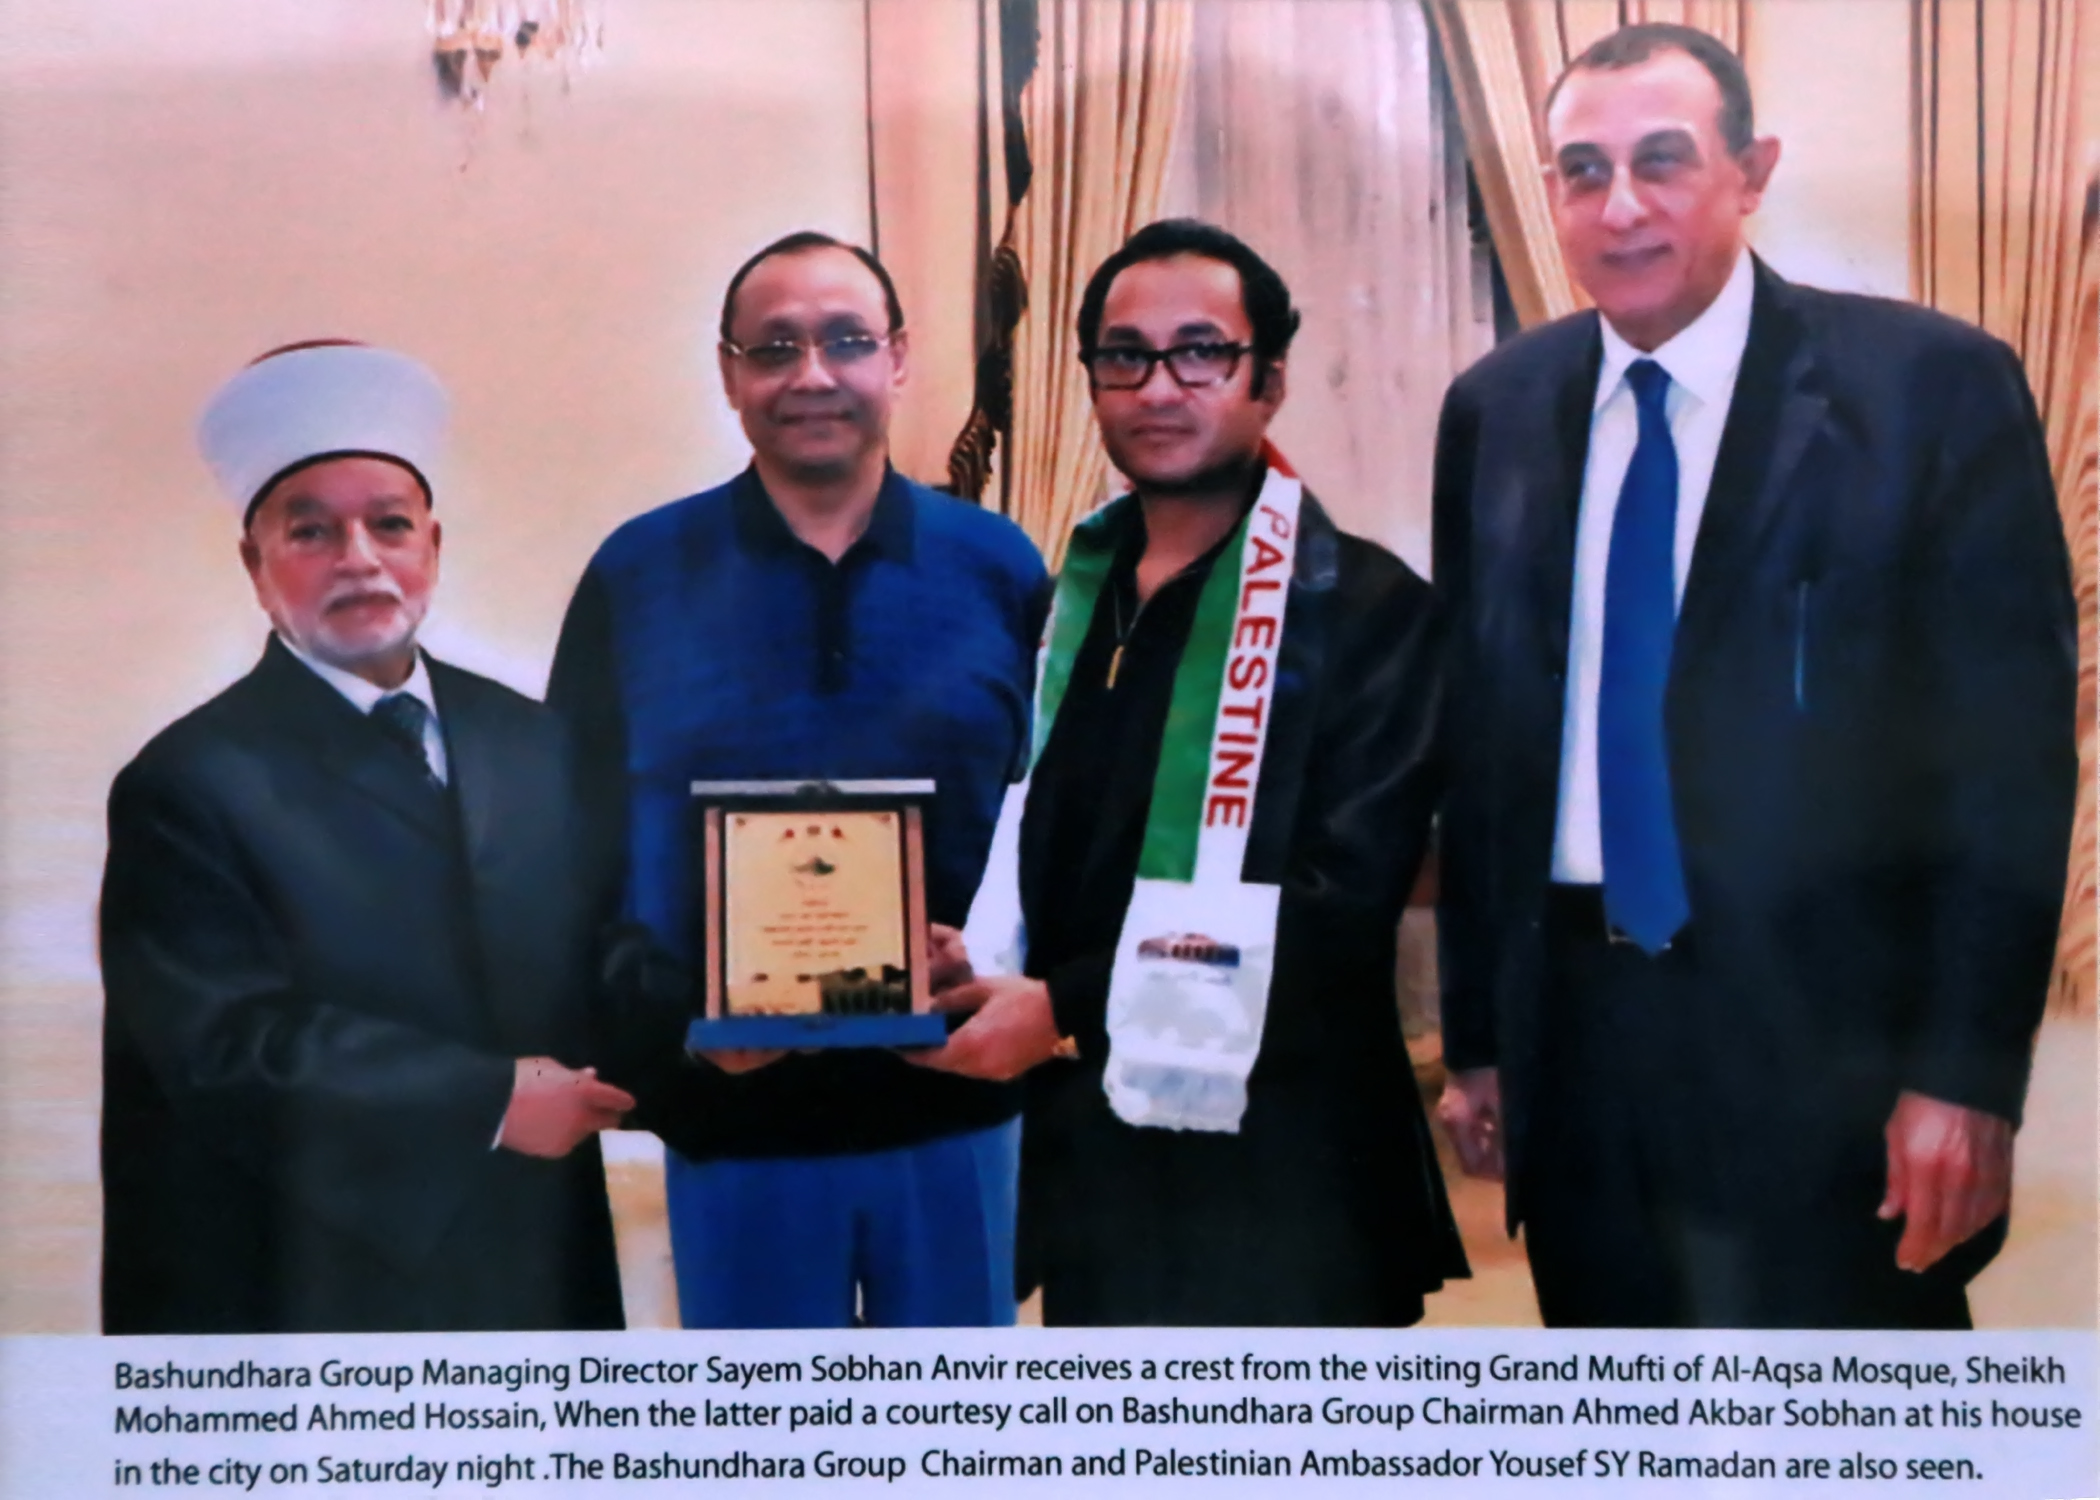 Bashundhara Group Managing Director Sayem Sobhan Anvir receives a crest from the visiting Grand Mufti of Al-Aqsa Mosque, Sheikh Mohammed Ahmed Hossain, When the latter paid a courtesy call on Bashundhara Group Chairman Ahmed Akbar Sobhan at his house In the city on Saturday night .The Bashundhara Group Chairman and Palestinian Ambassador Yousef SY Ramadan are also seen.